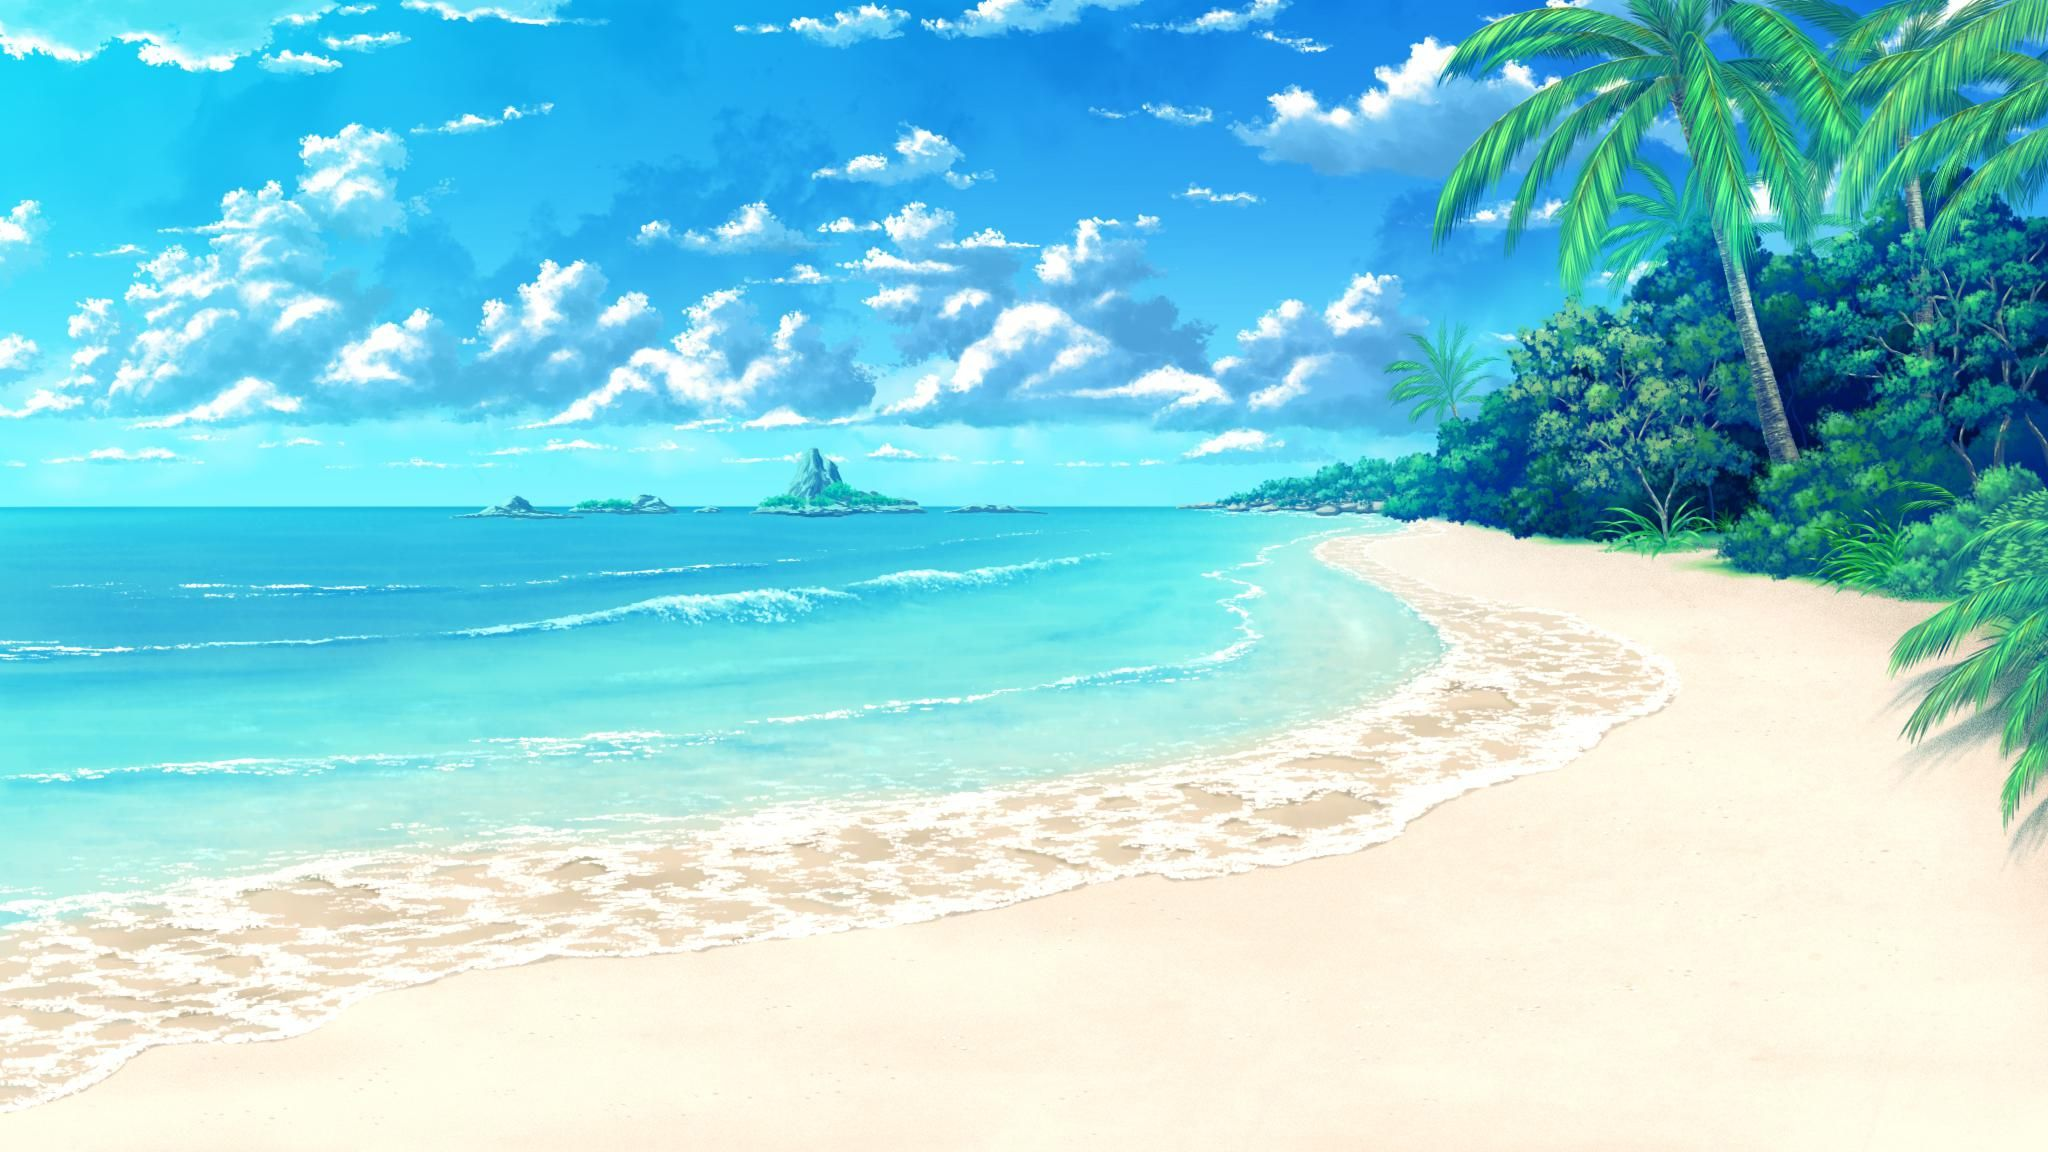 Anime Tropical Beach Scenery Wallpaper